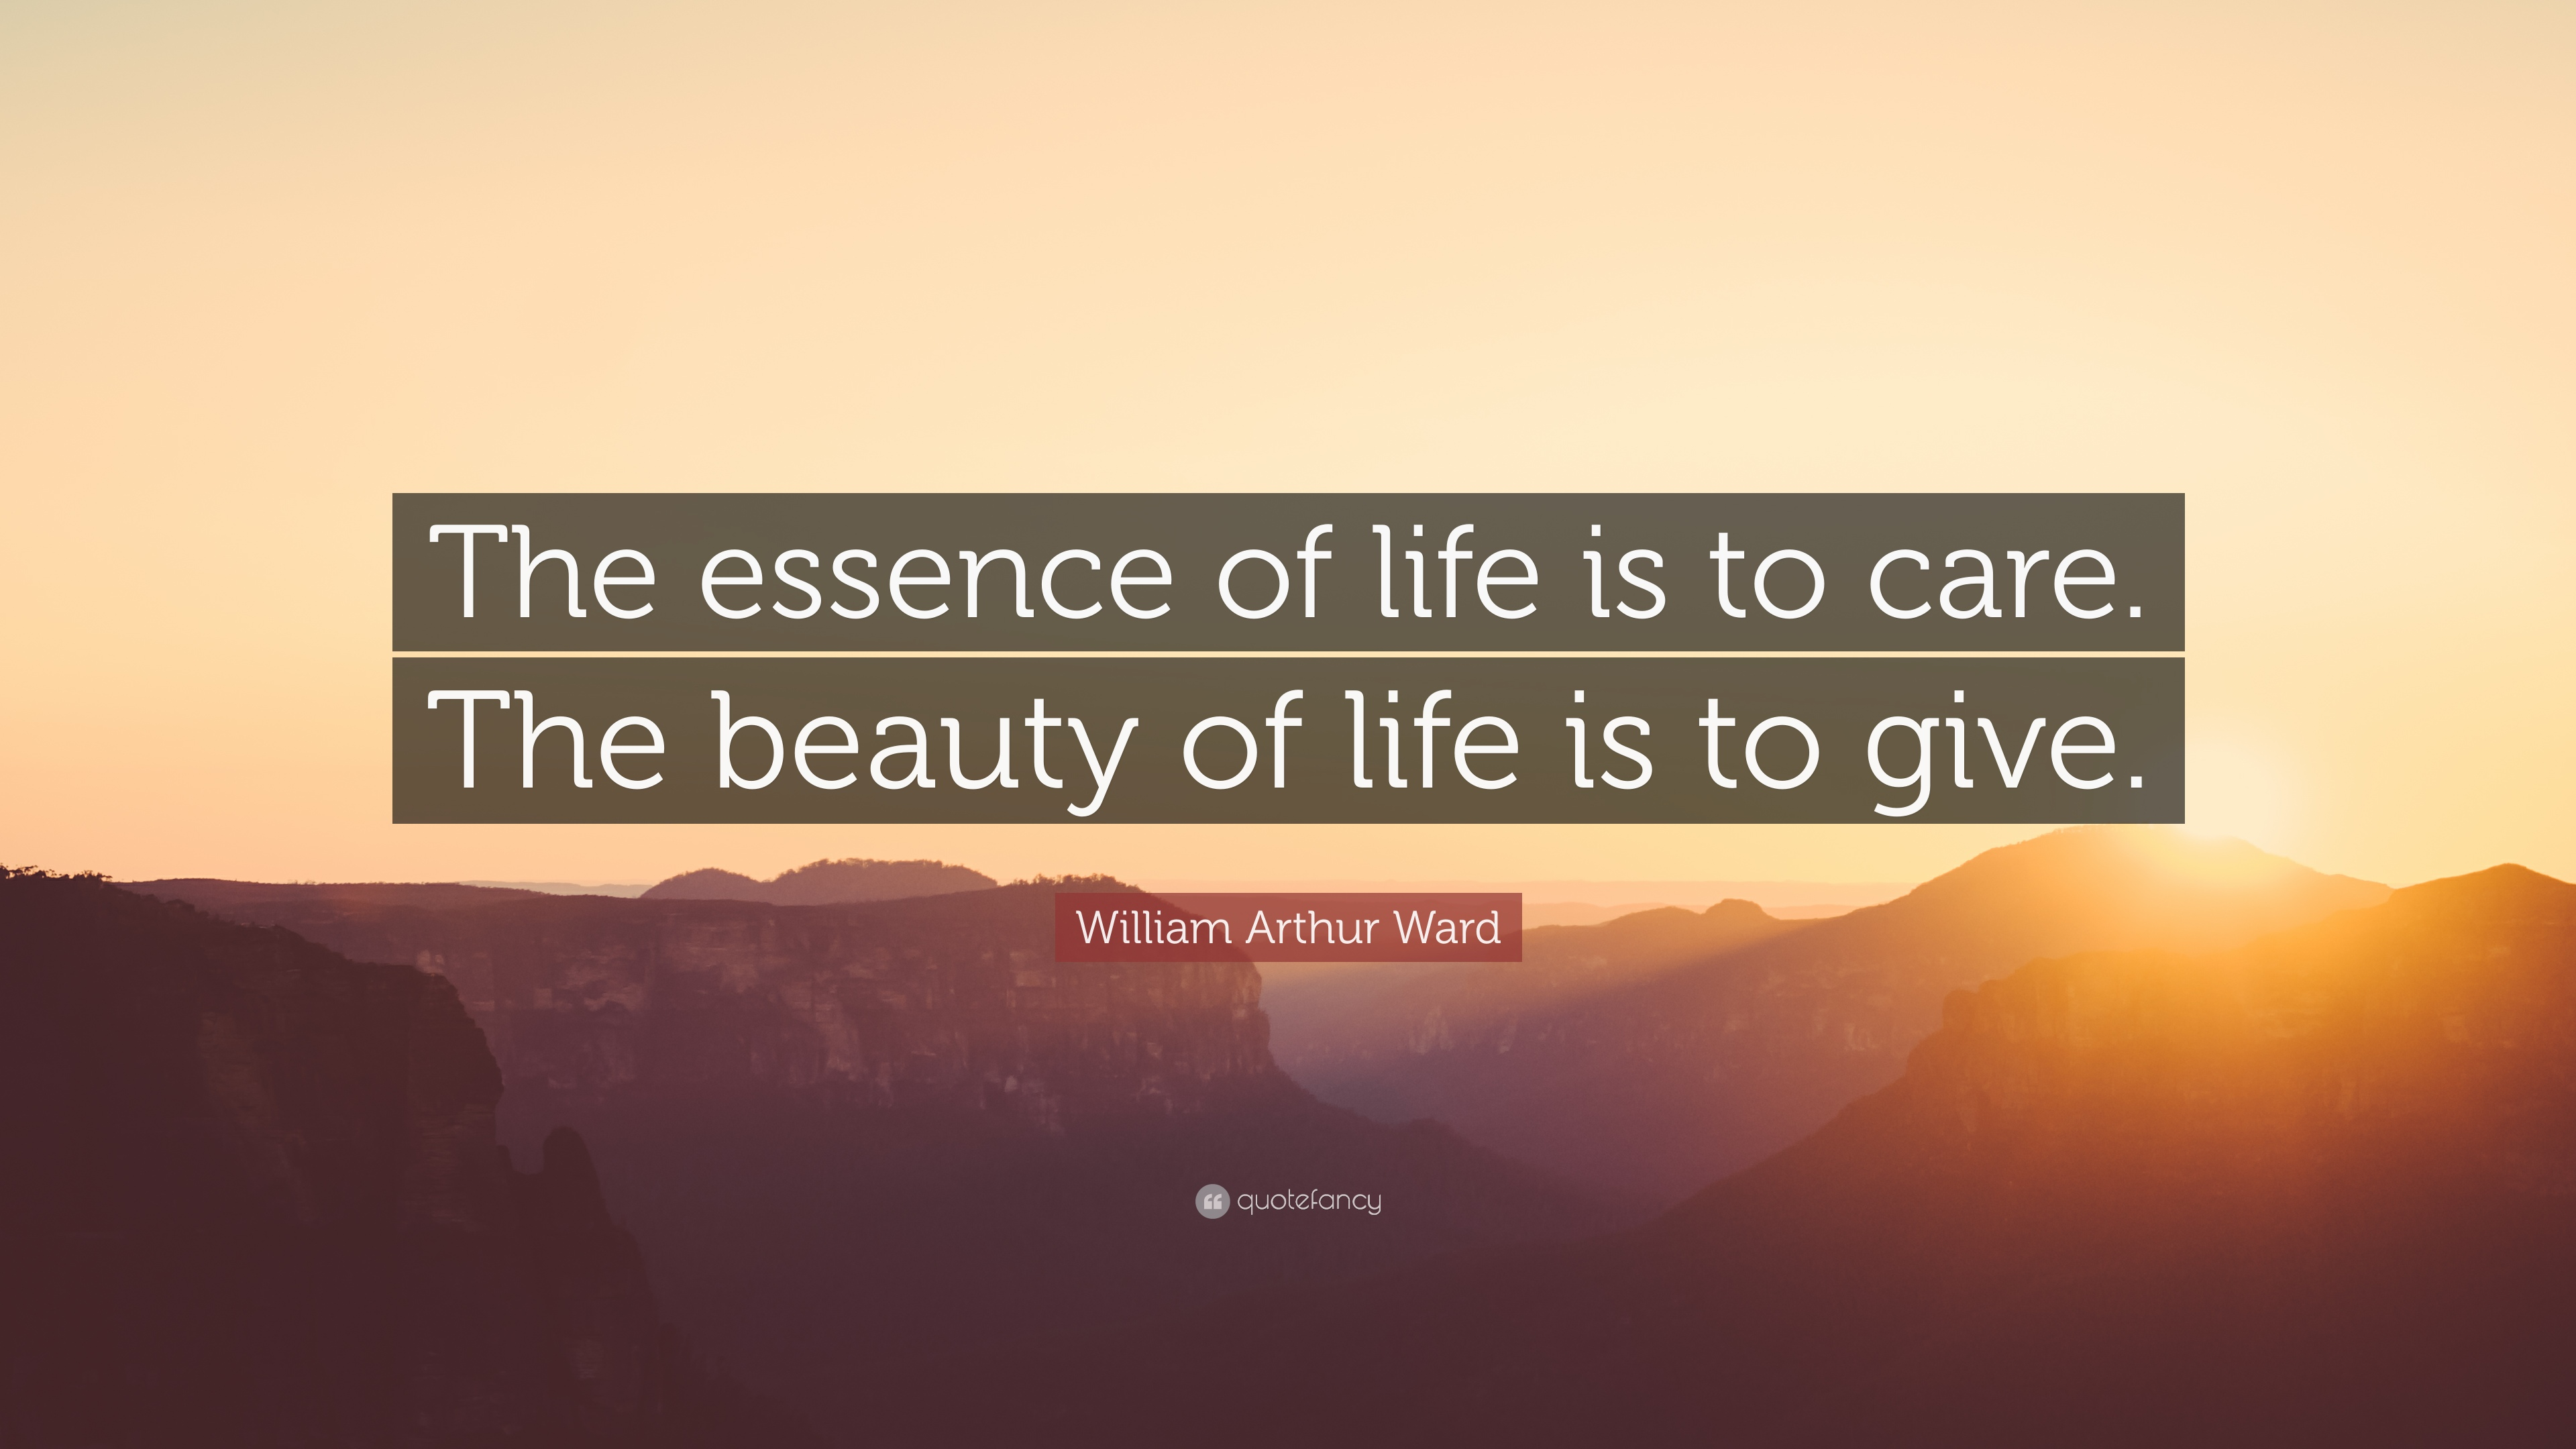 Casey Neistat Quotes Wallpaper William Arthur Ward Quote The Essence Of Life Is To Care